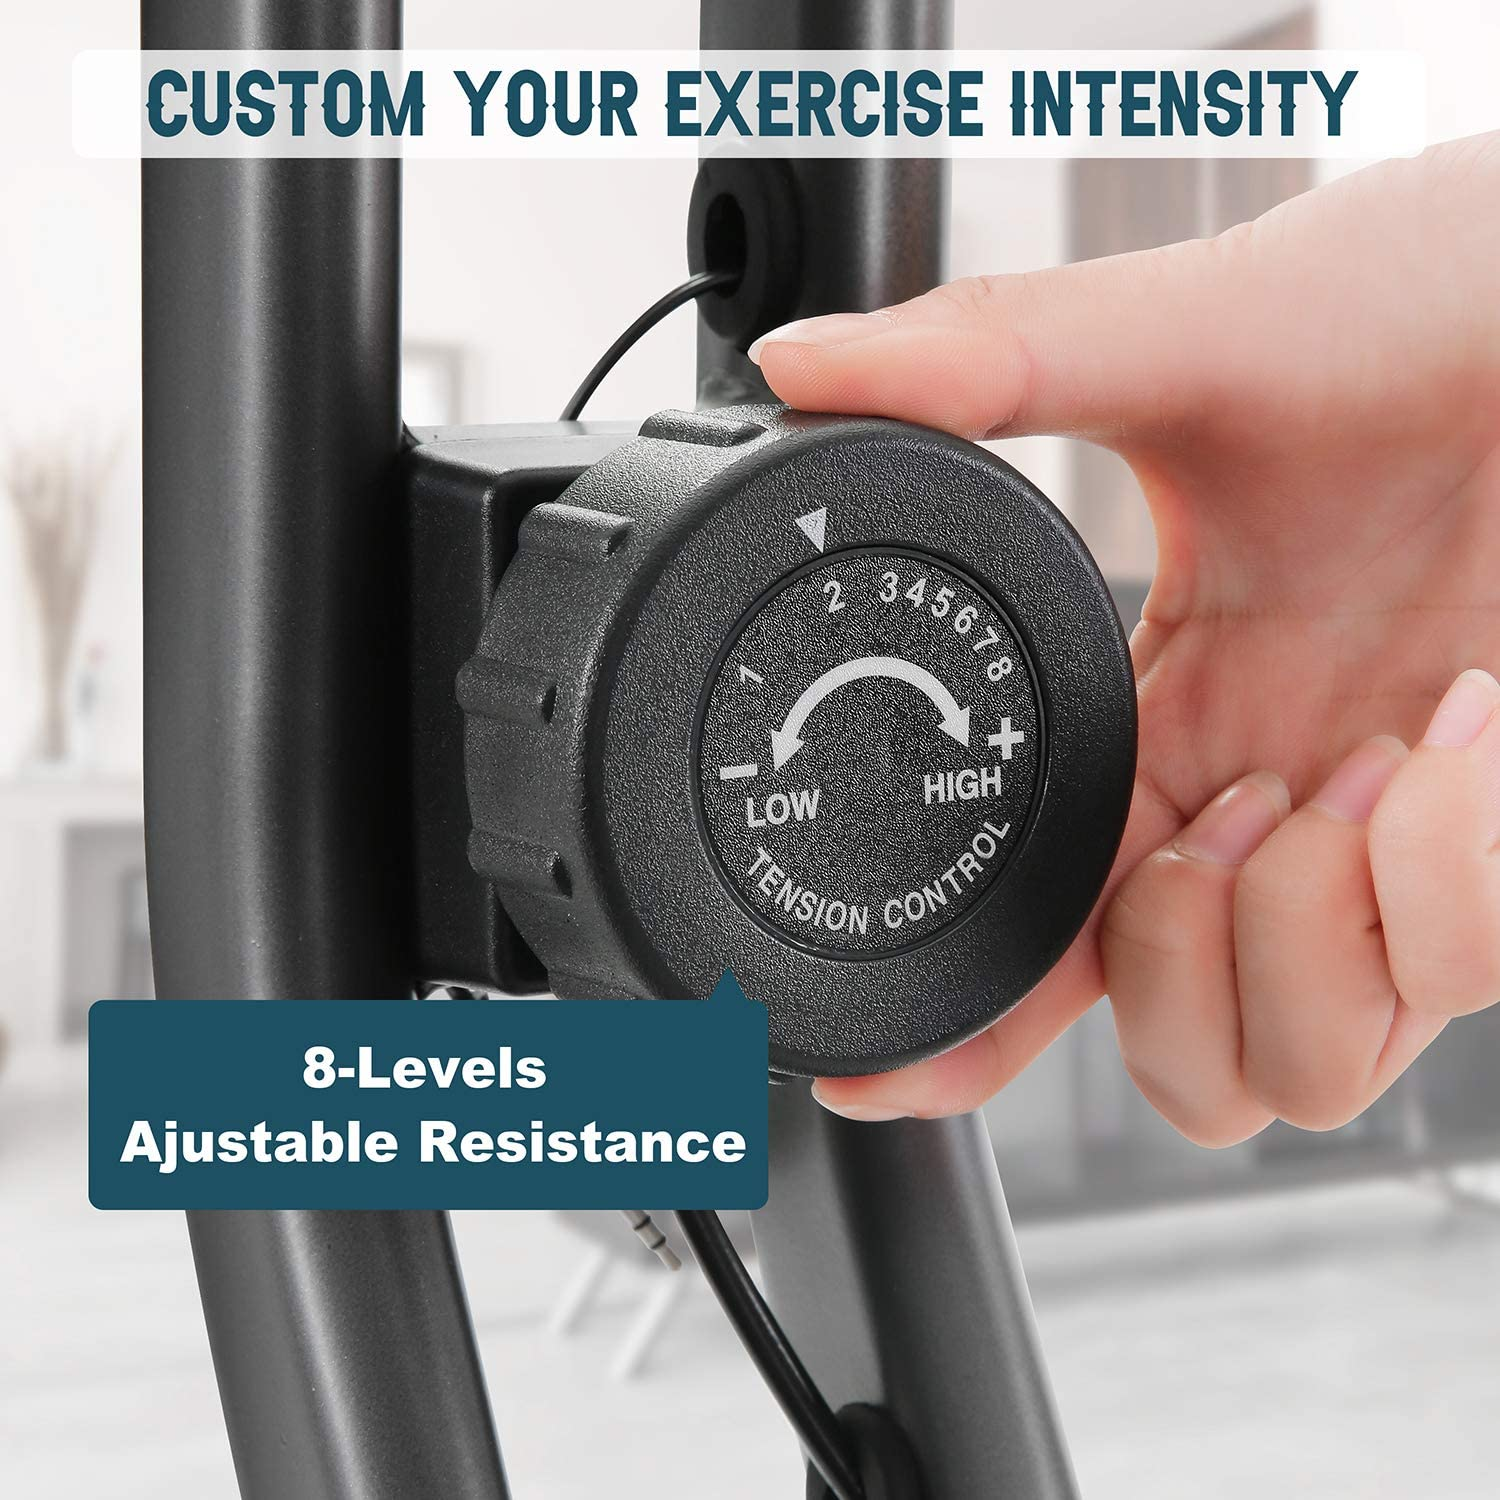 MaxKare Folding Exercise Bike Stationary Magnetic Exercise Bike Machine with Adjustable Resistance Heart Rate Detector LCD Monitor Oversized Seat Cushion for Home Indoor Woman